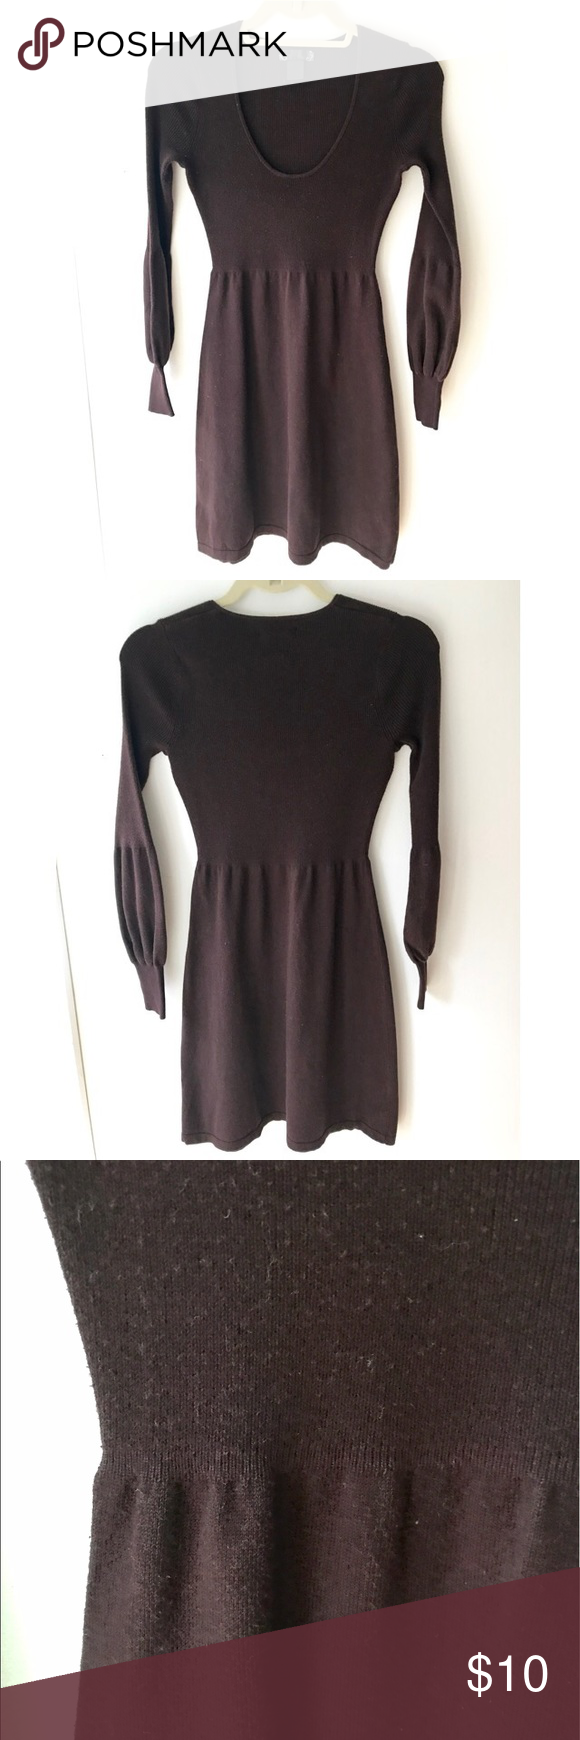 Scoop neck sweater dress in chocolate brown | Chocolate brown ...